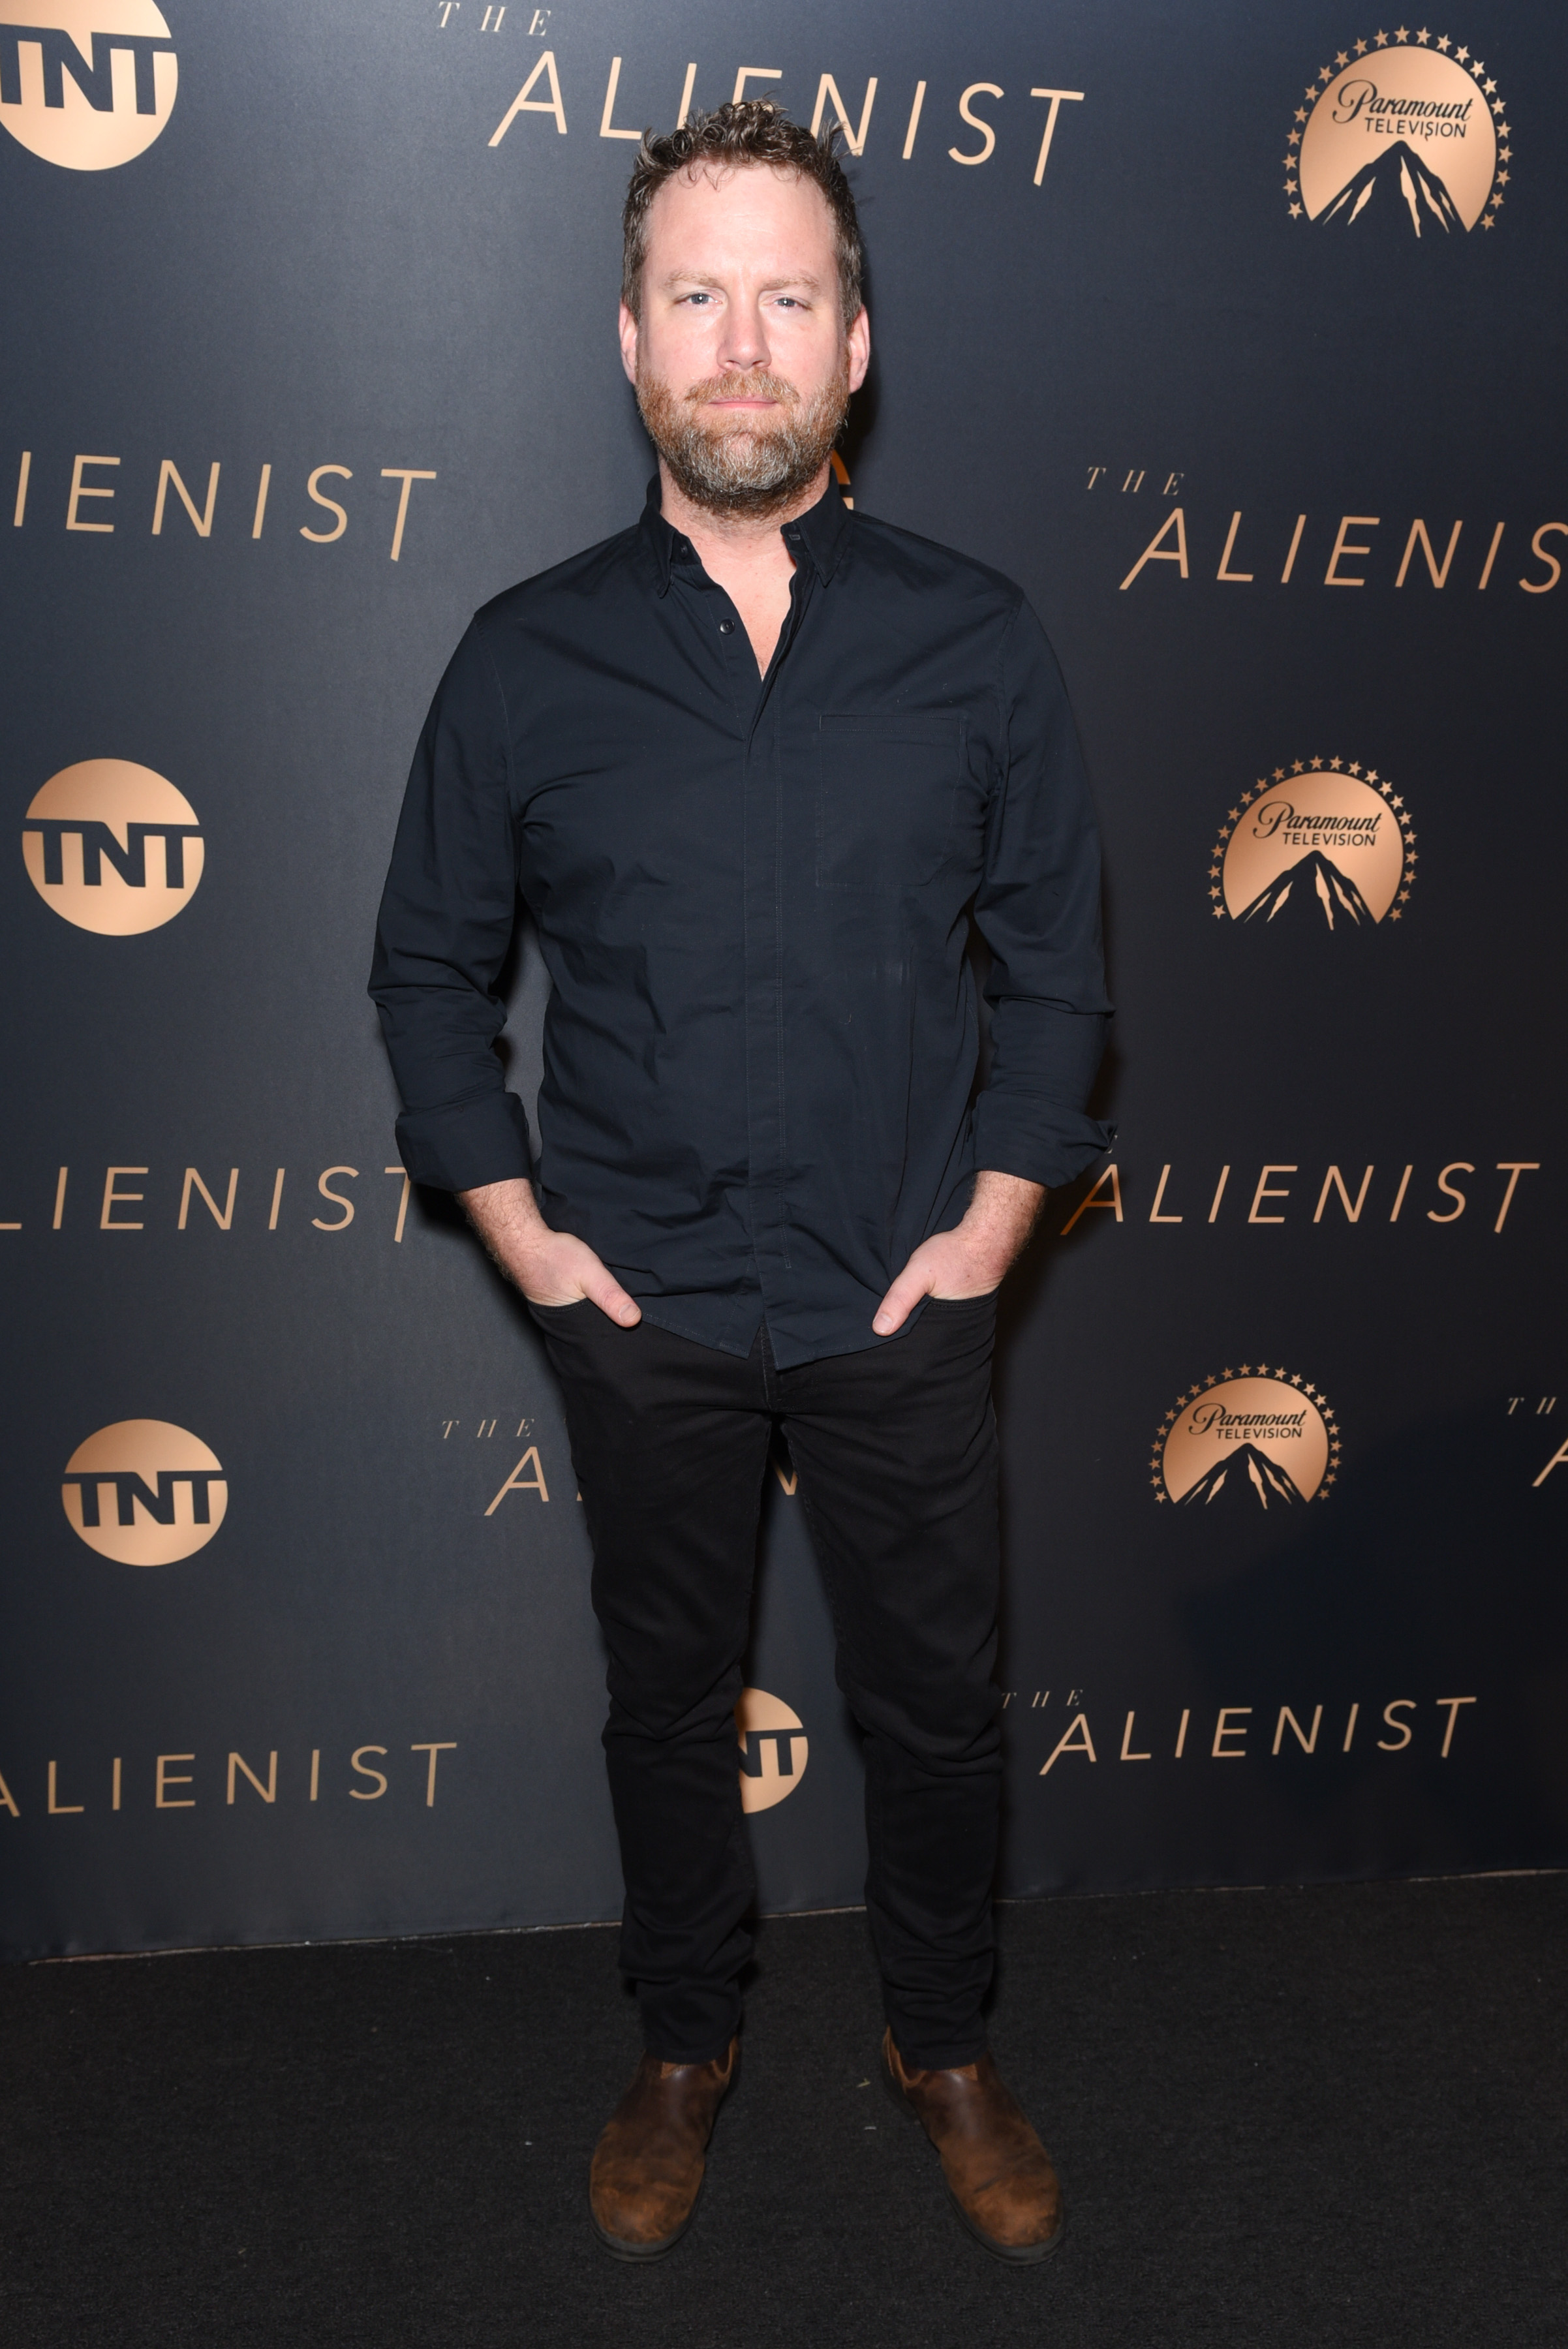 Patrick Gilmore attends Premiere Of TNT's 'The Alienist' - Arrivals on January 11, 2018 in Los Angeles, California.